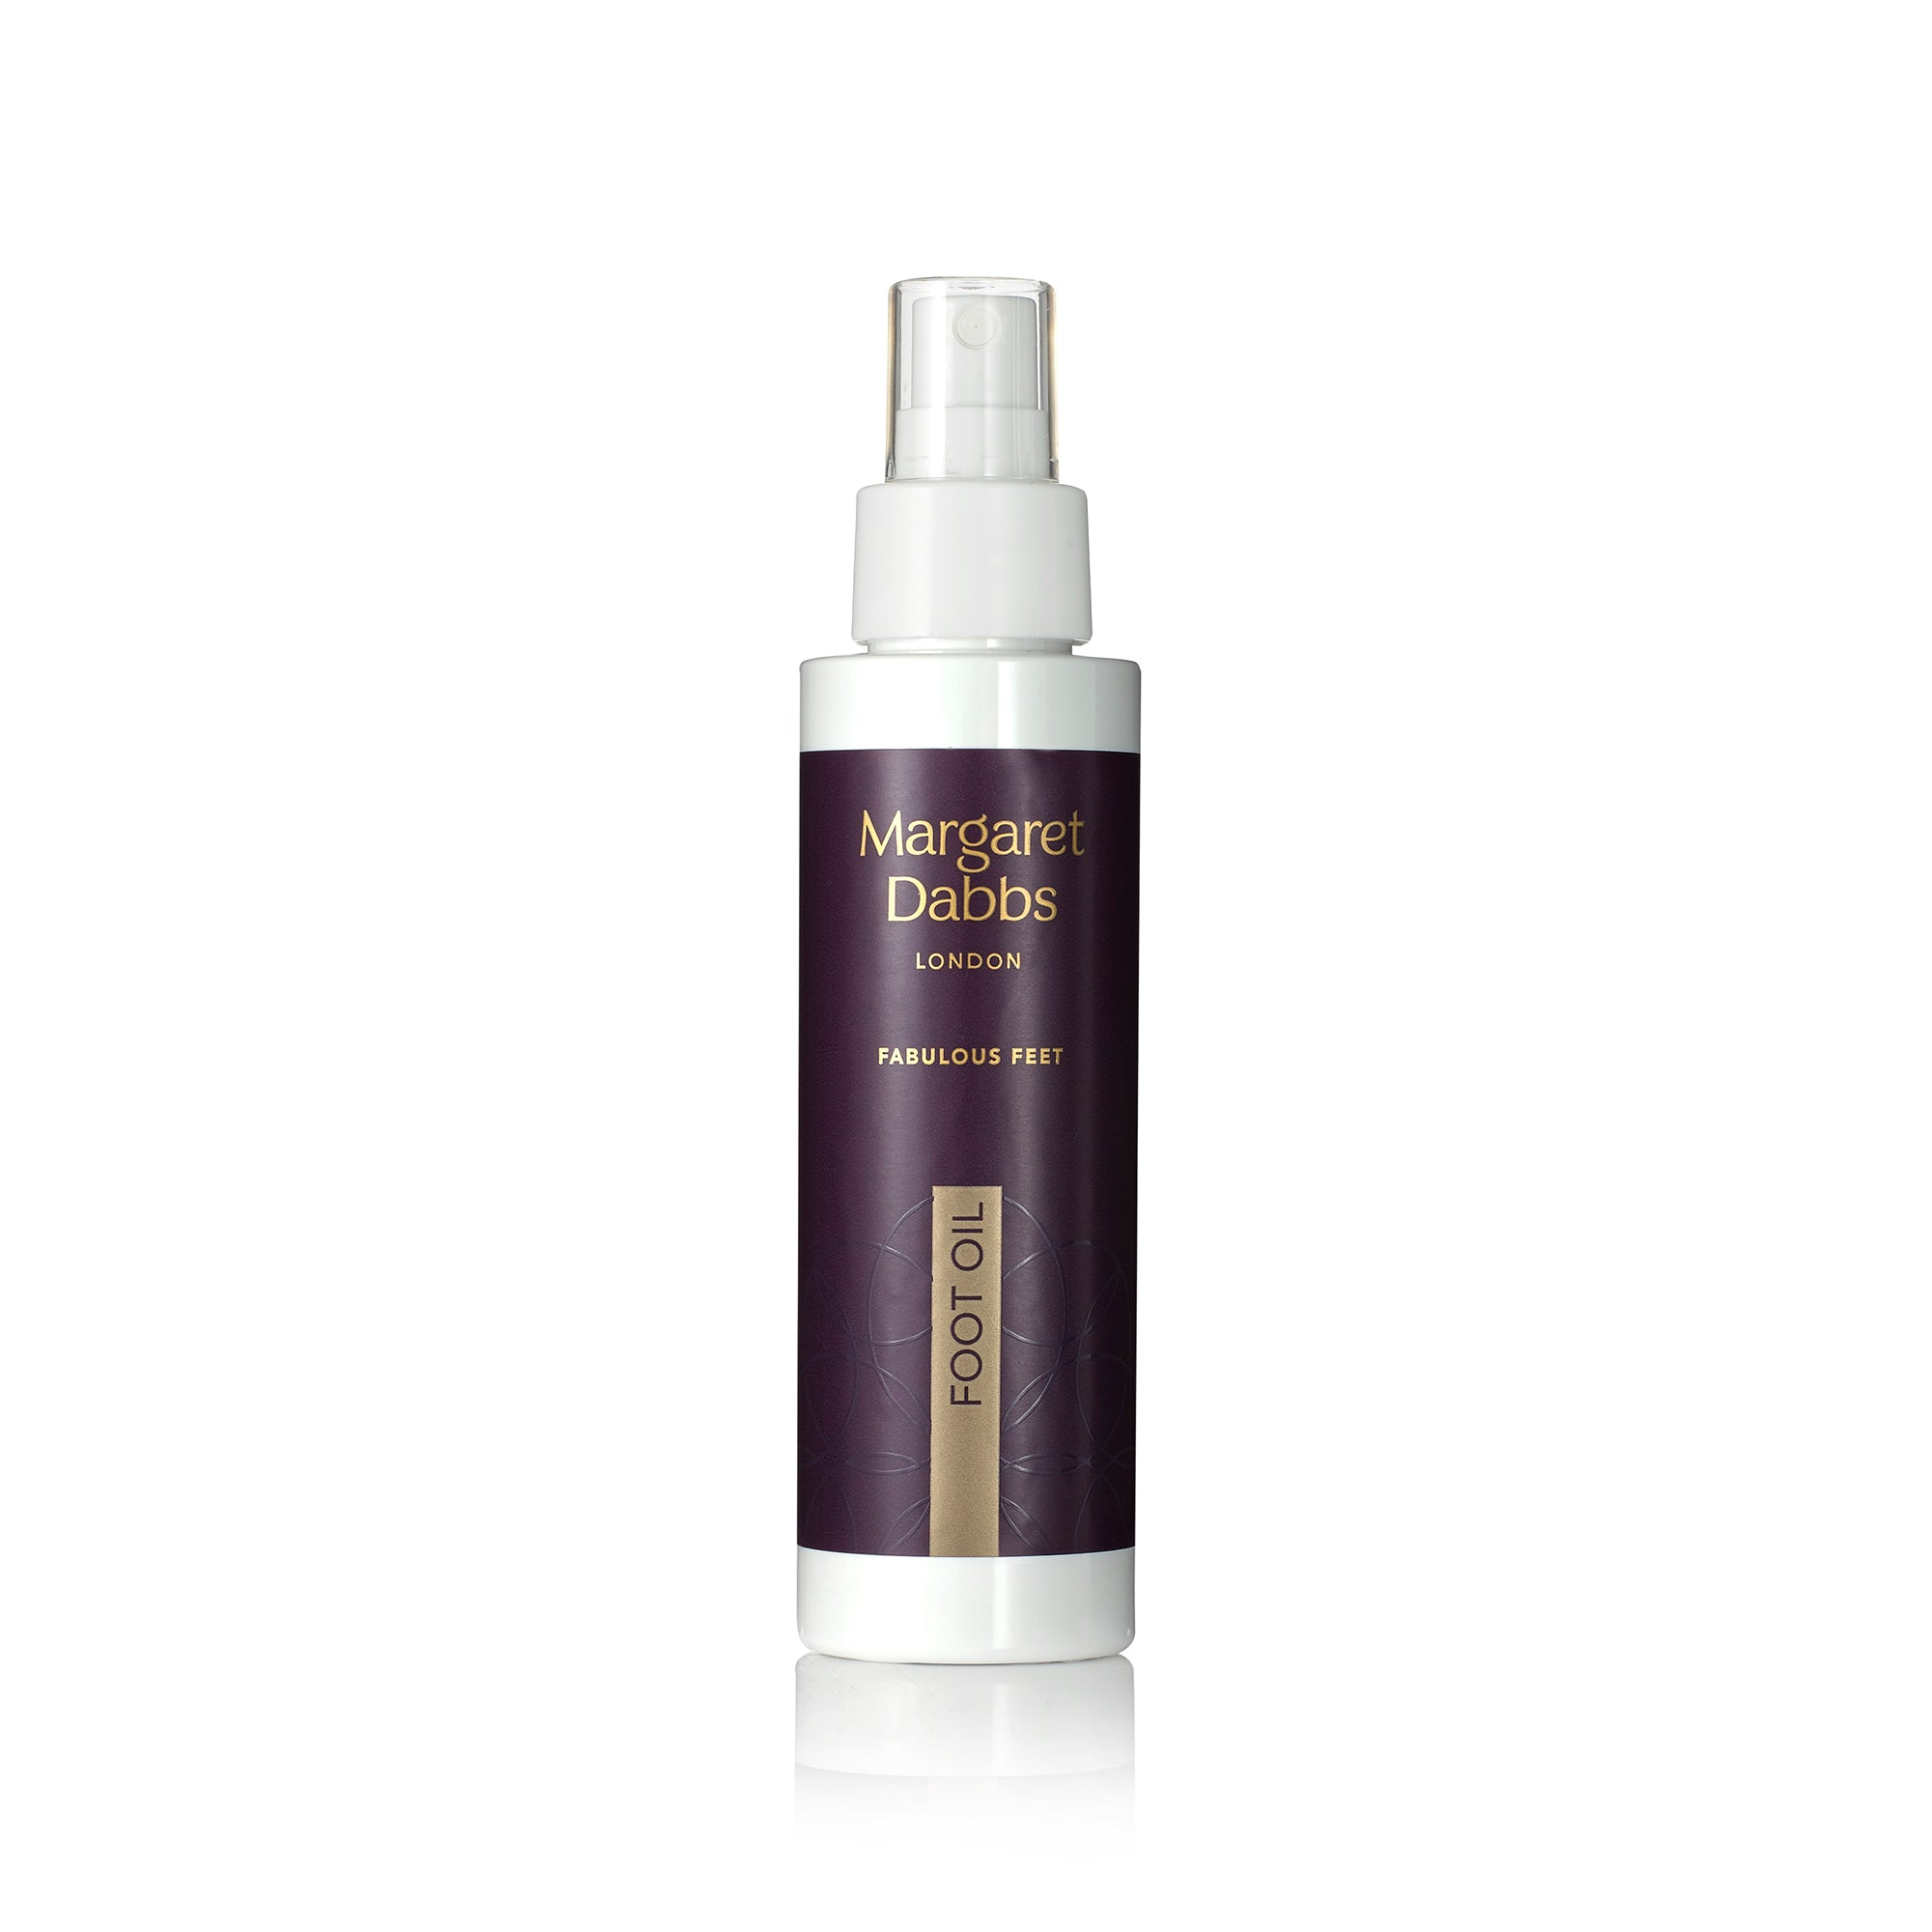 Delaire Graff Estate Spa, Margaret Dabbs Intensive Treatment Foot Oil